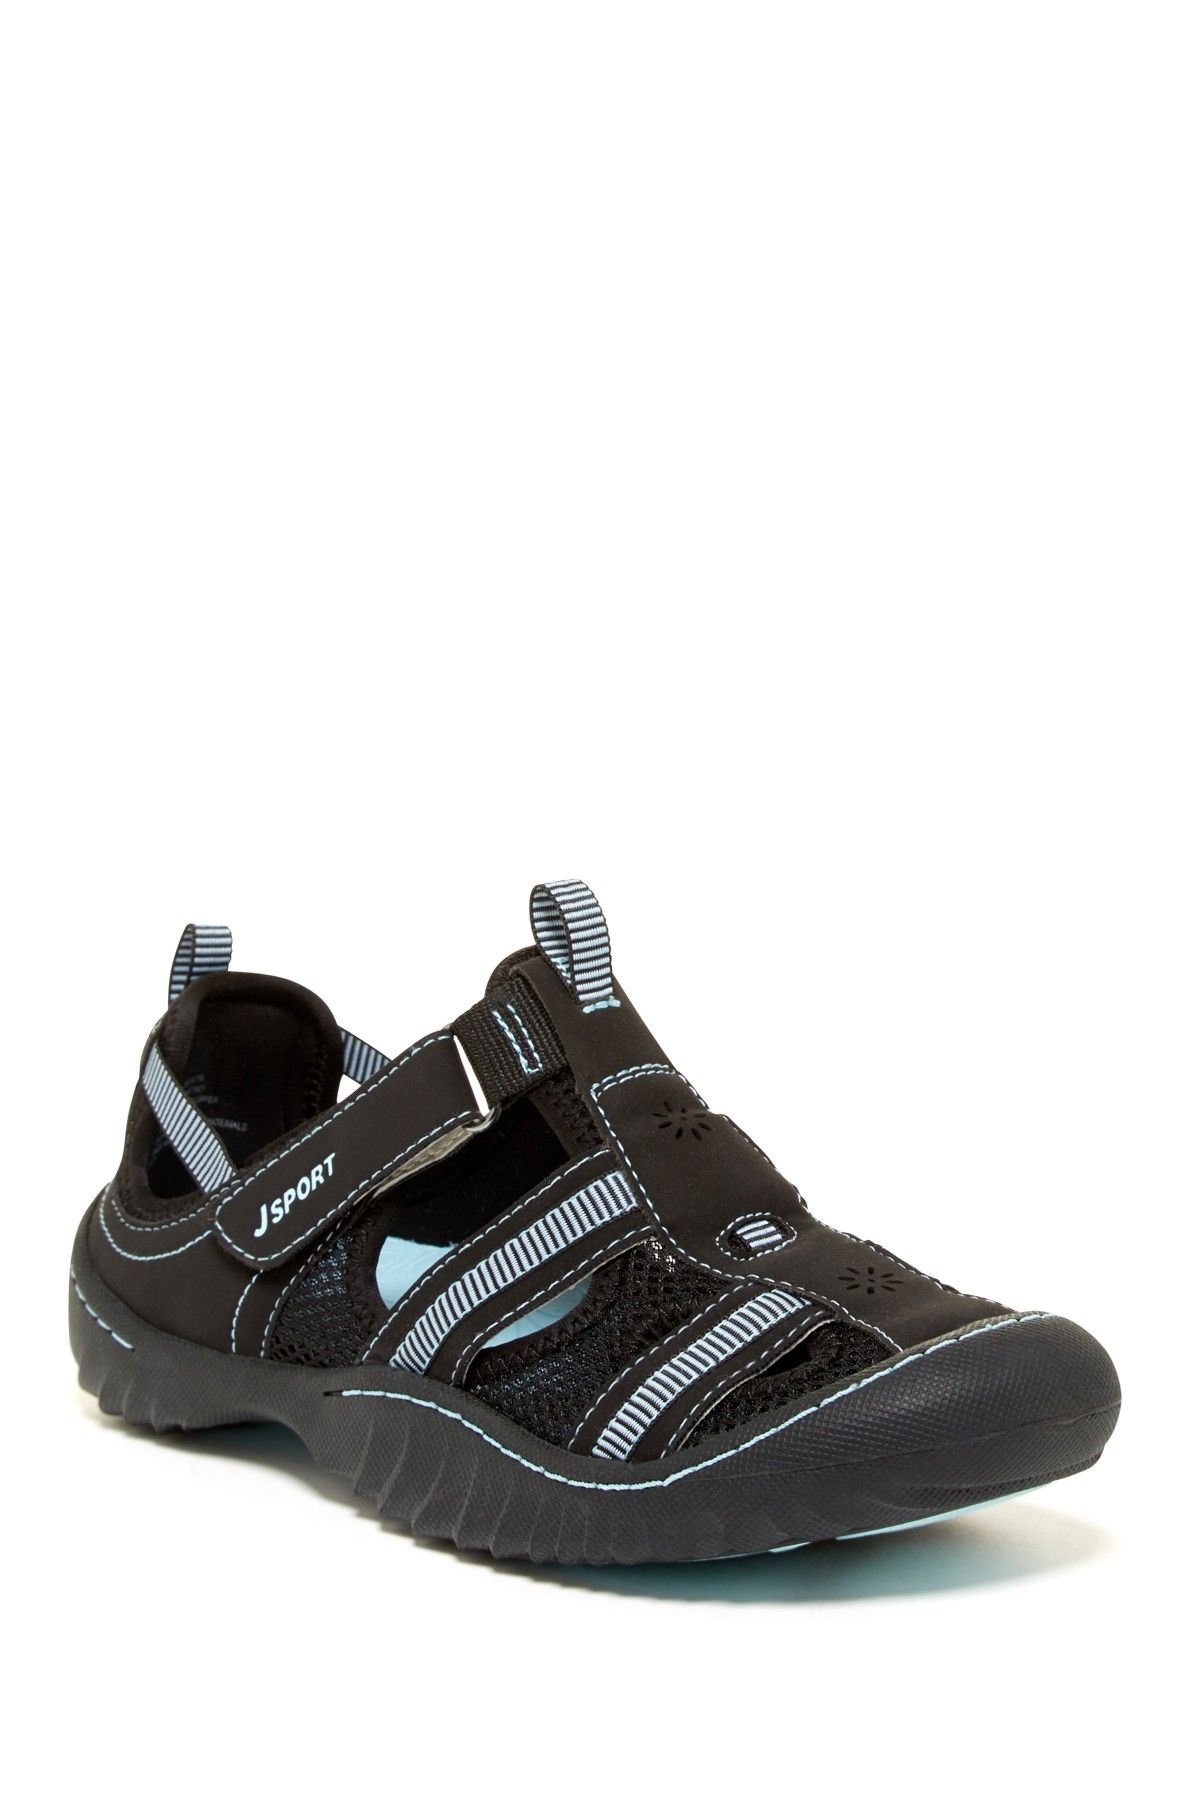 Jsport By Jambu Regatta  On Shoes Womens Casual Shoes